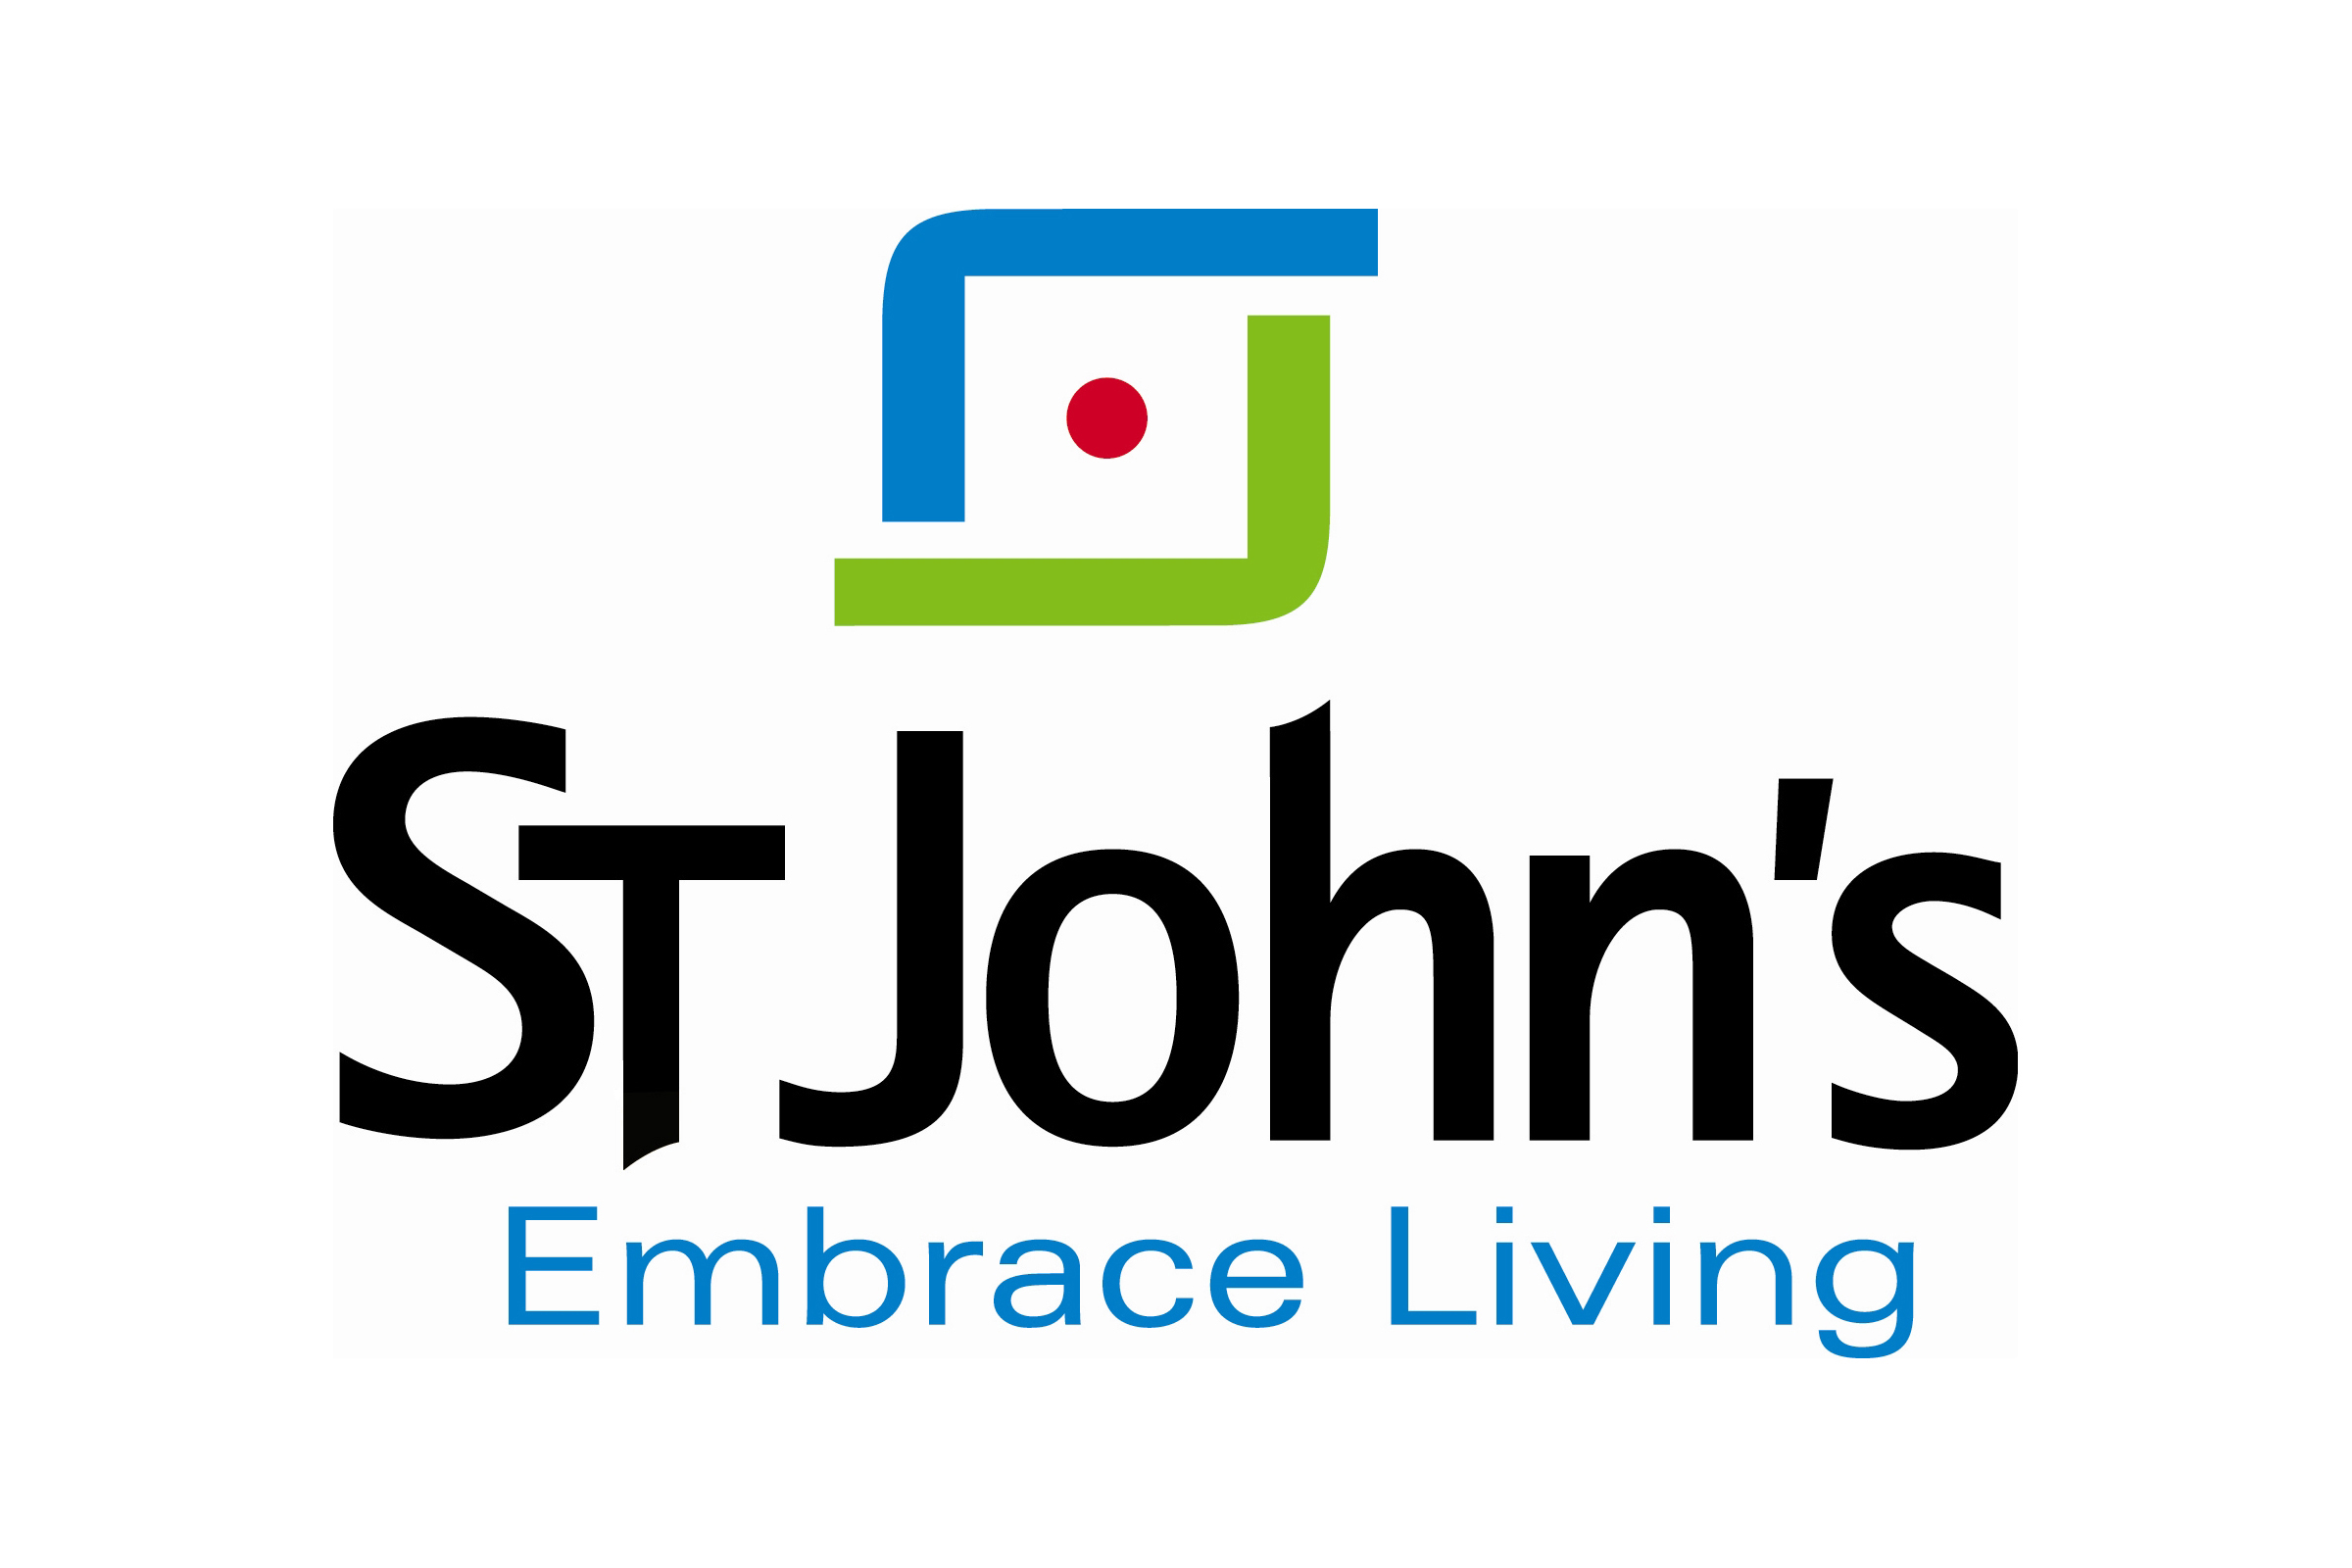 #6 St. John's ( Supporting)